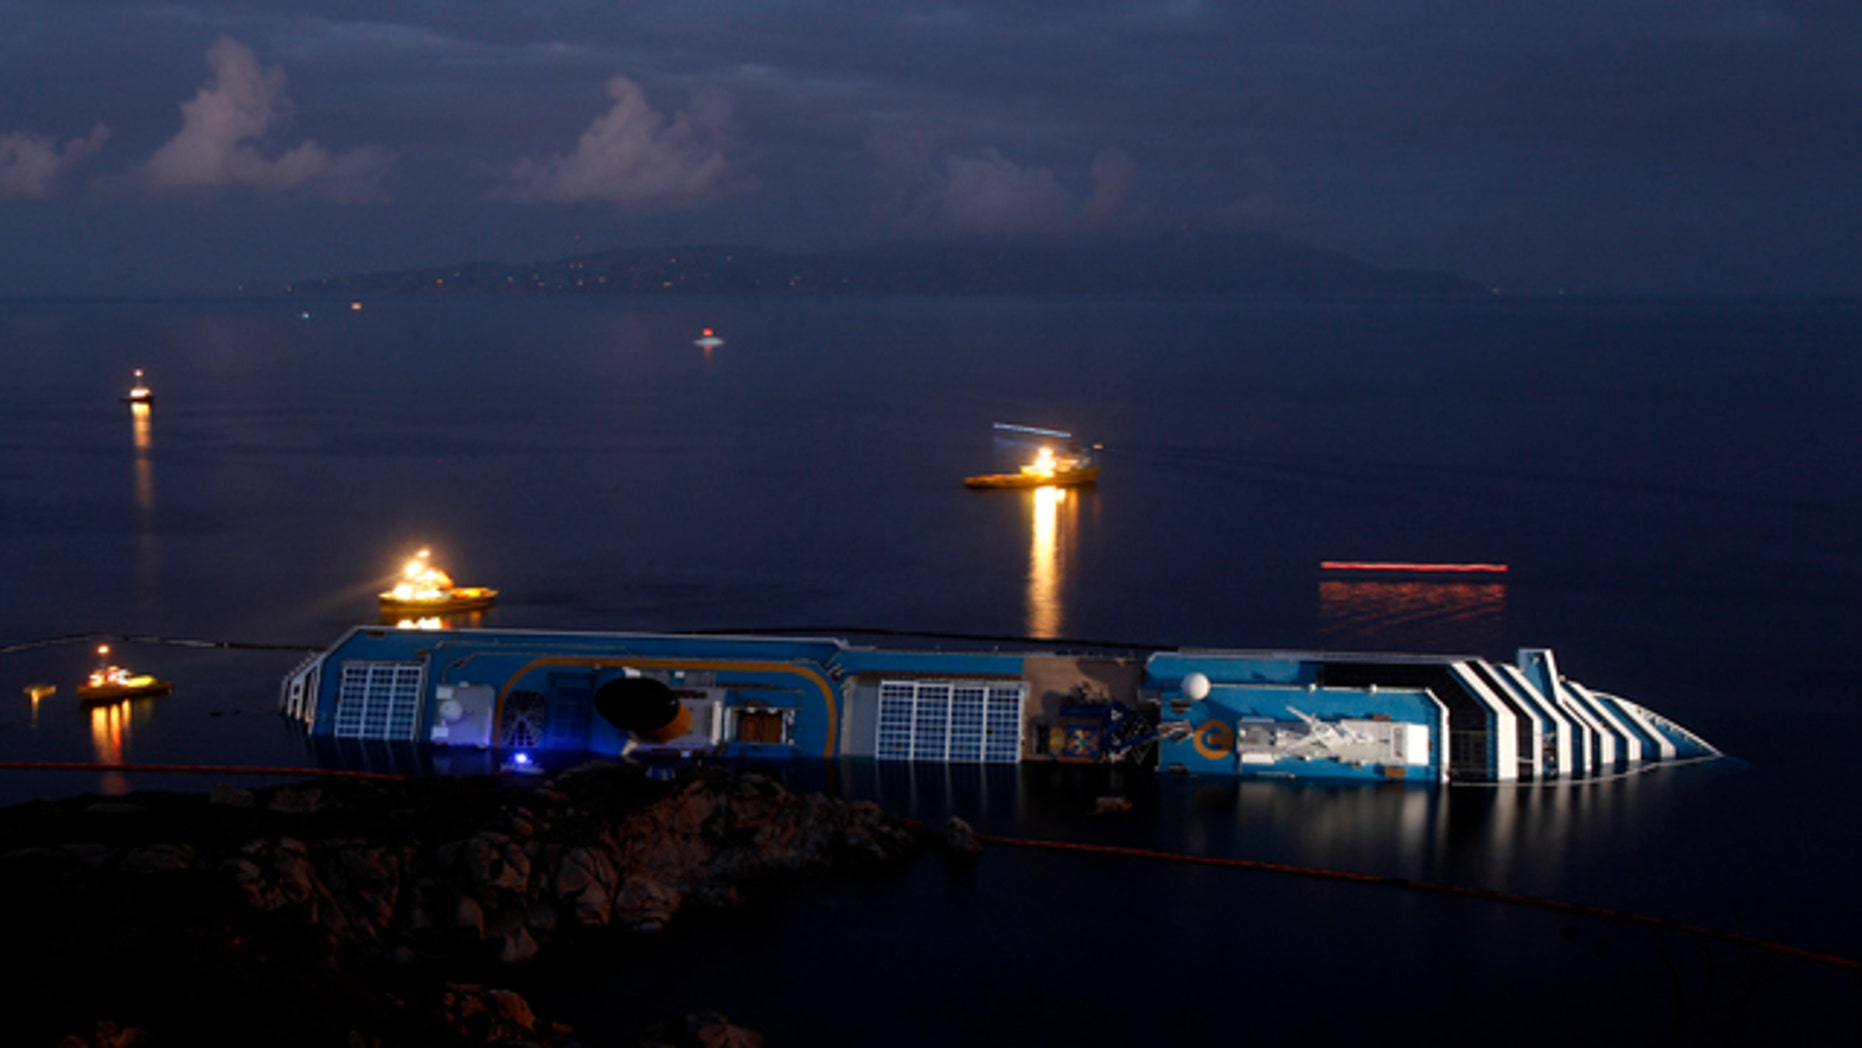 Jan. 23: The grounded cruise ship Costa Concordia lies on its side off the Tuscan island of Giglio, Italy.